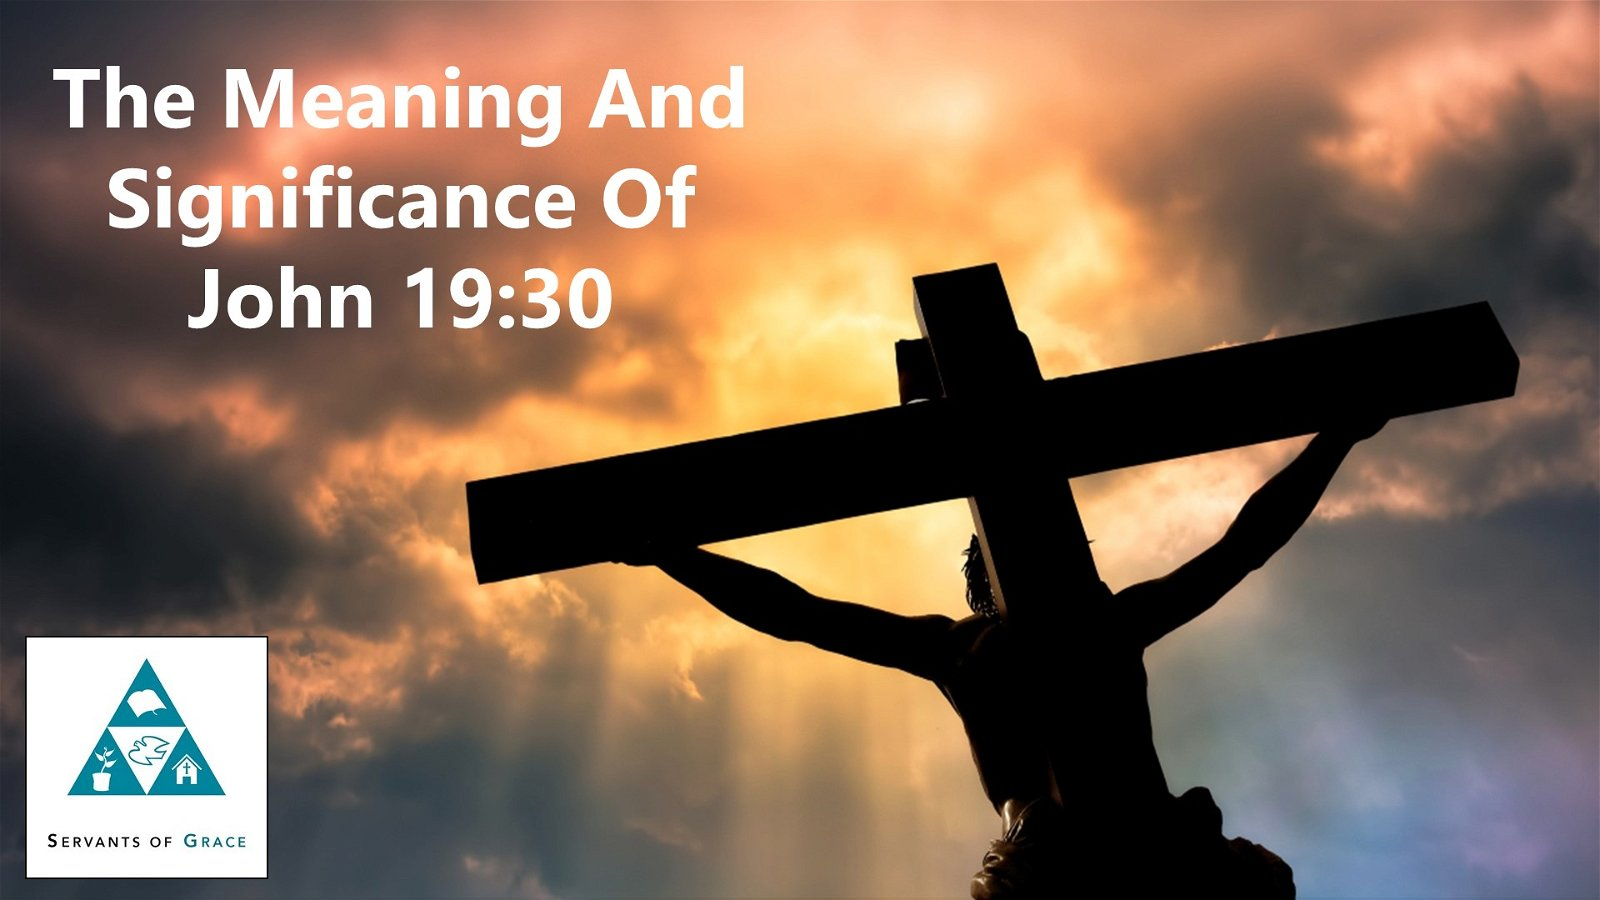 The Meaning and Significance of John 19:30 1